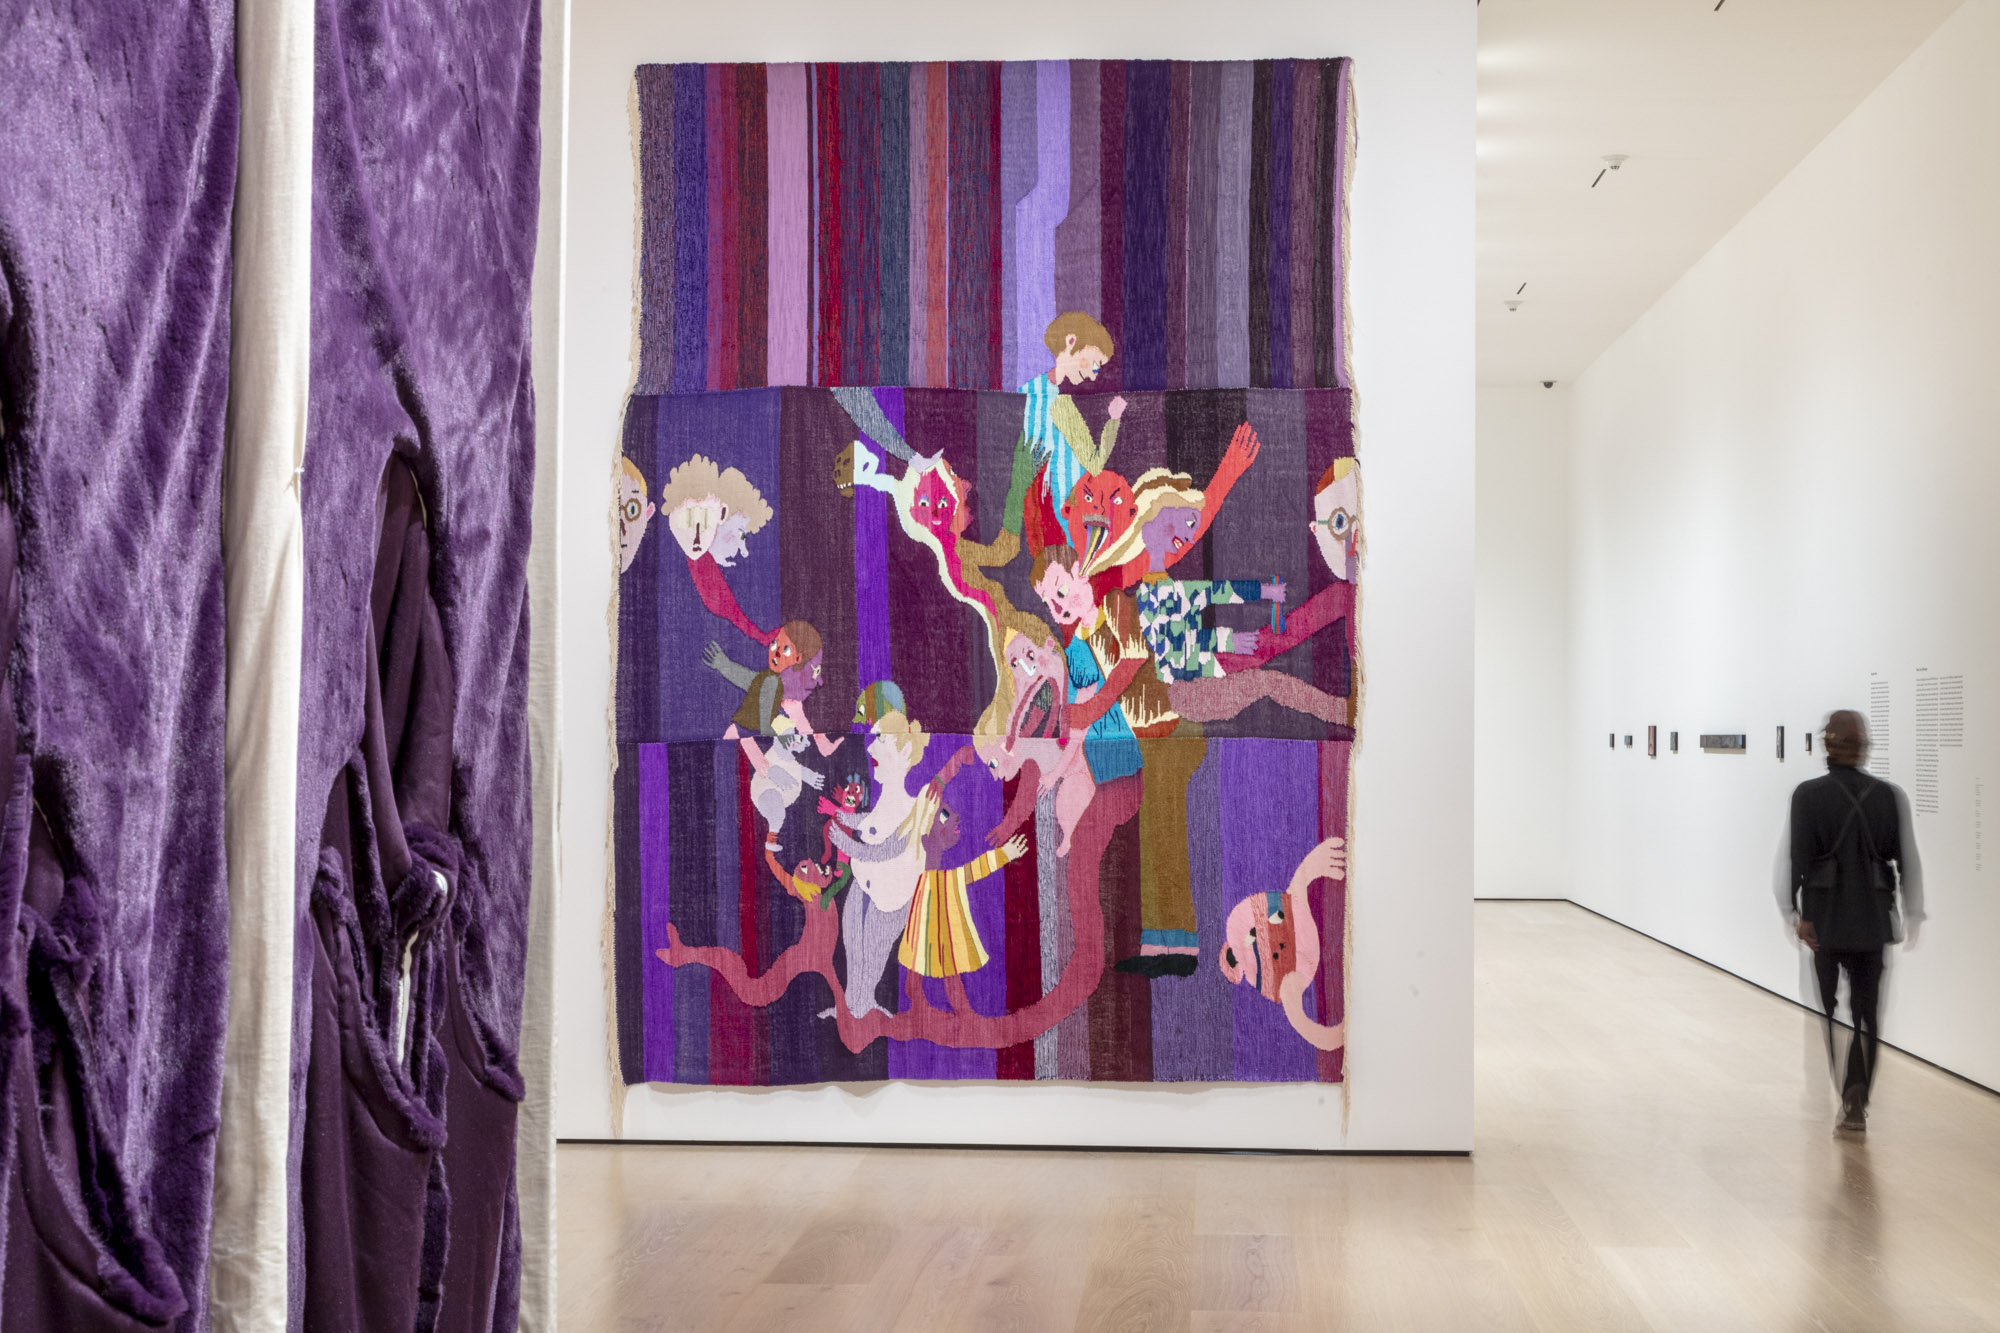 """An installation view of Christina Forrer's work at """"Made in L.A. 2020: a version."""" at Hammer Museum, Los Angeles. 